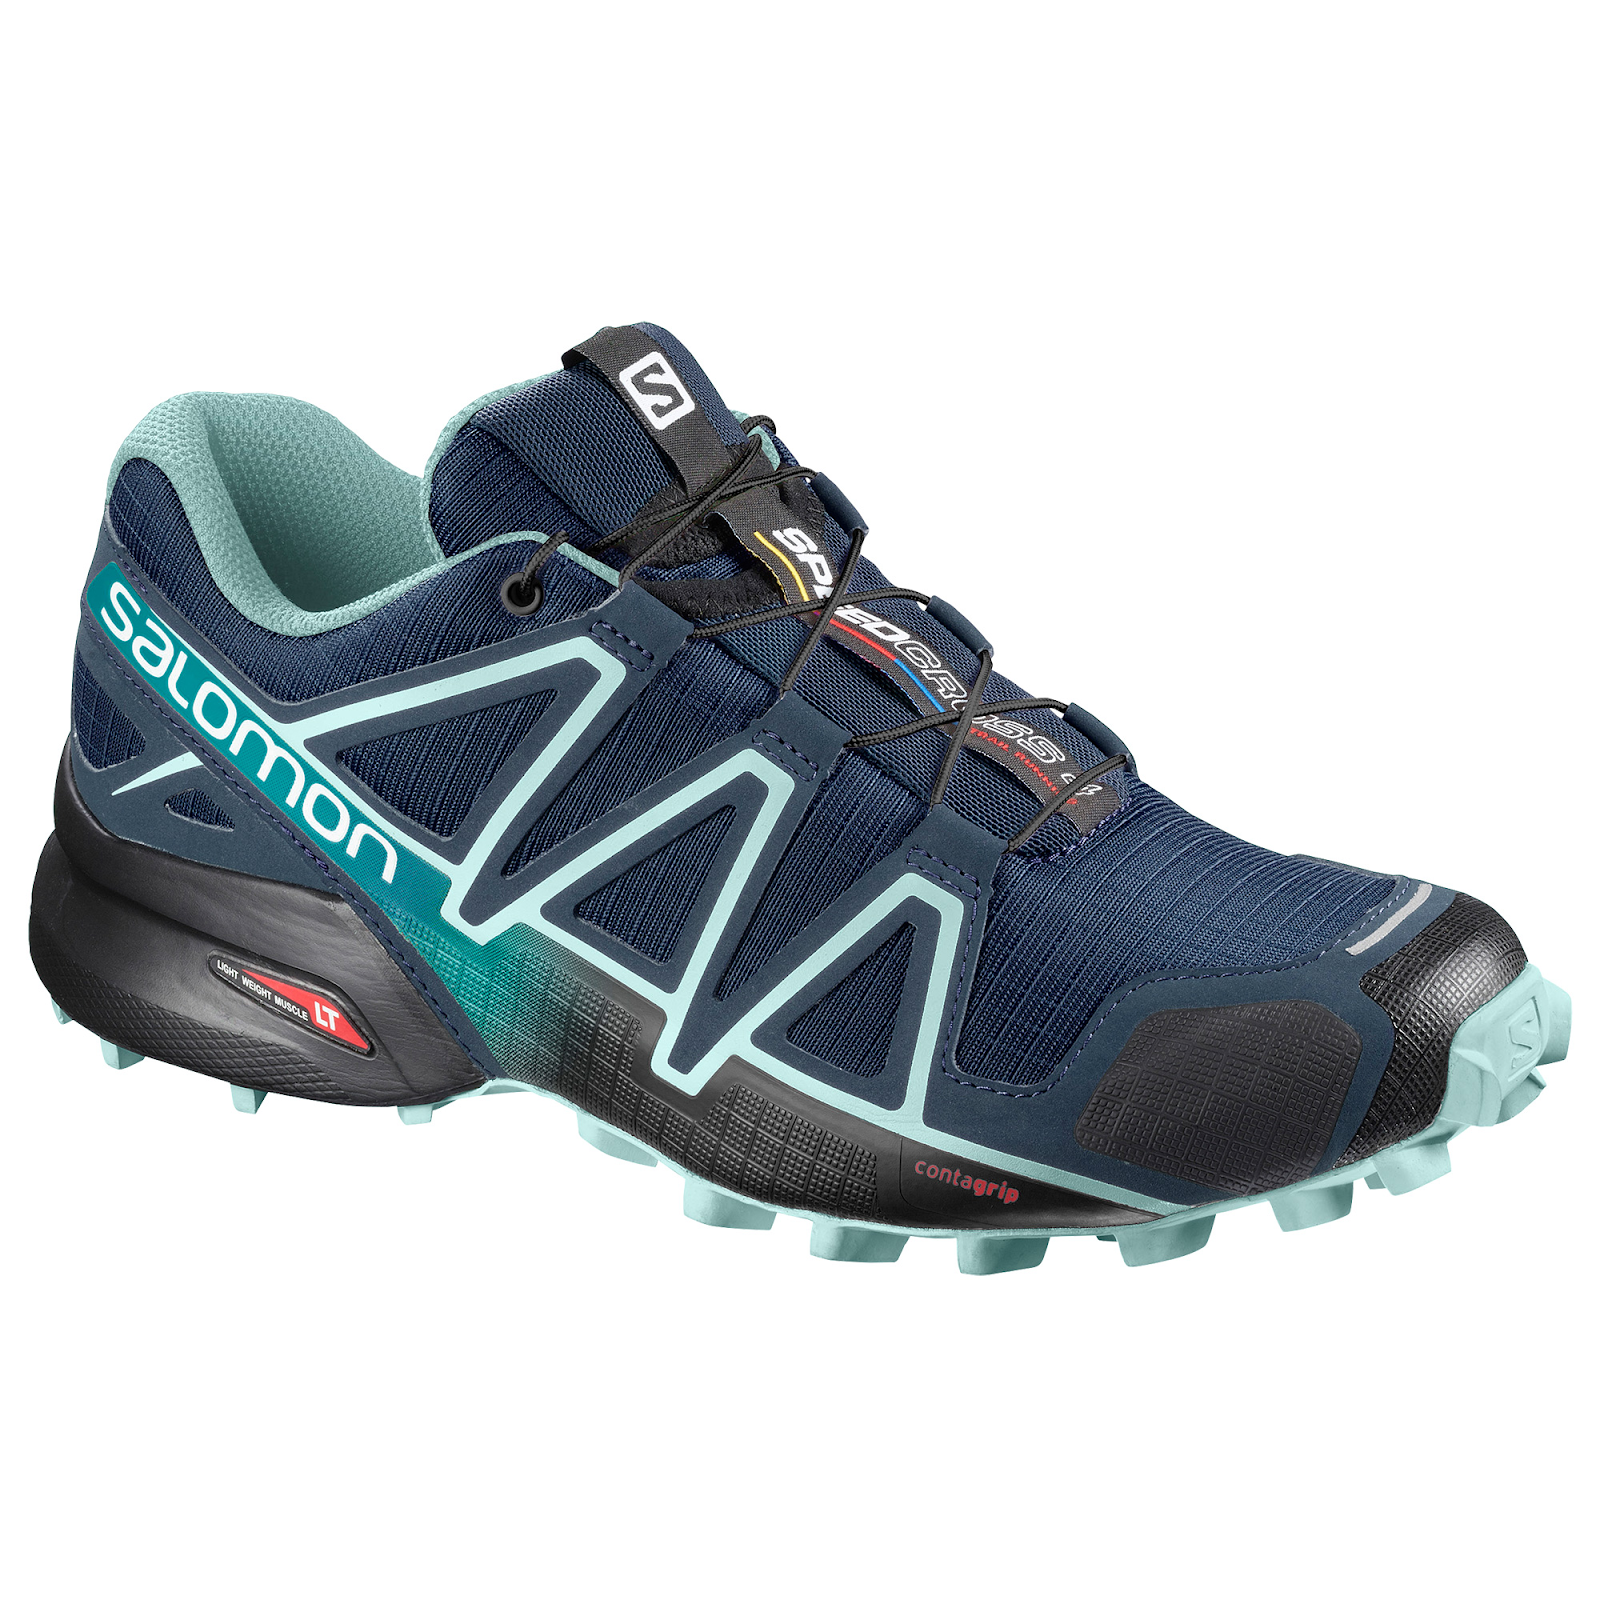 Speedcross 4 Women's - Uses: Running, hiking, training